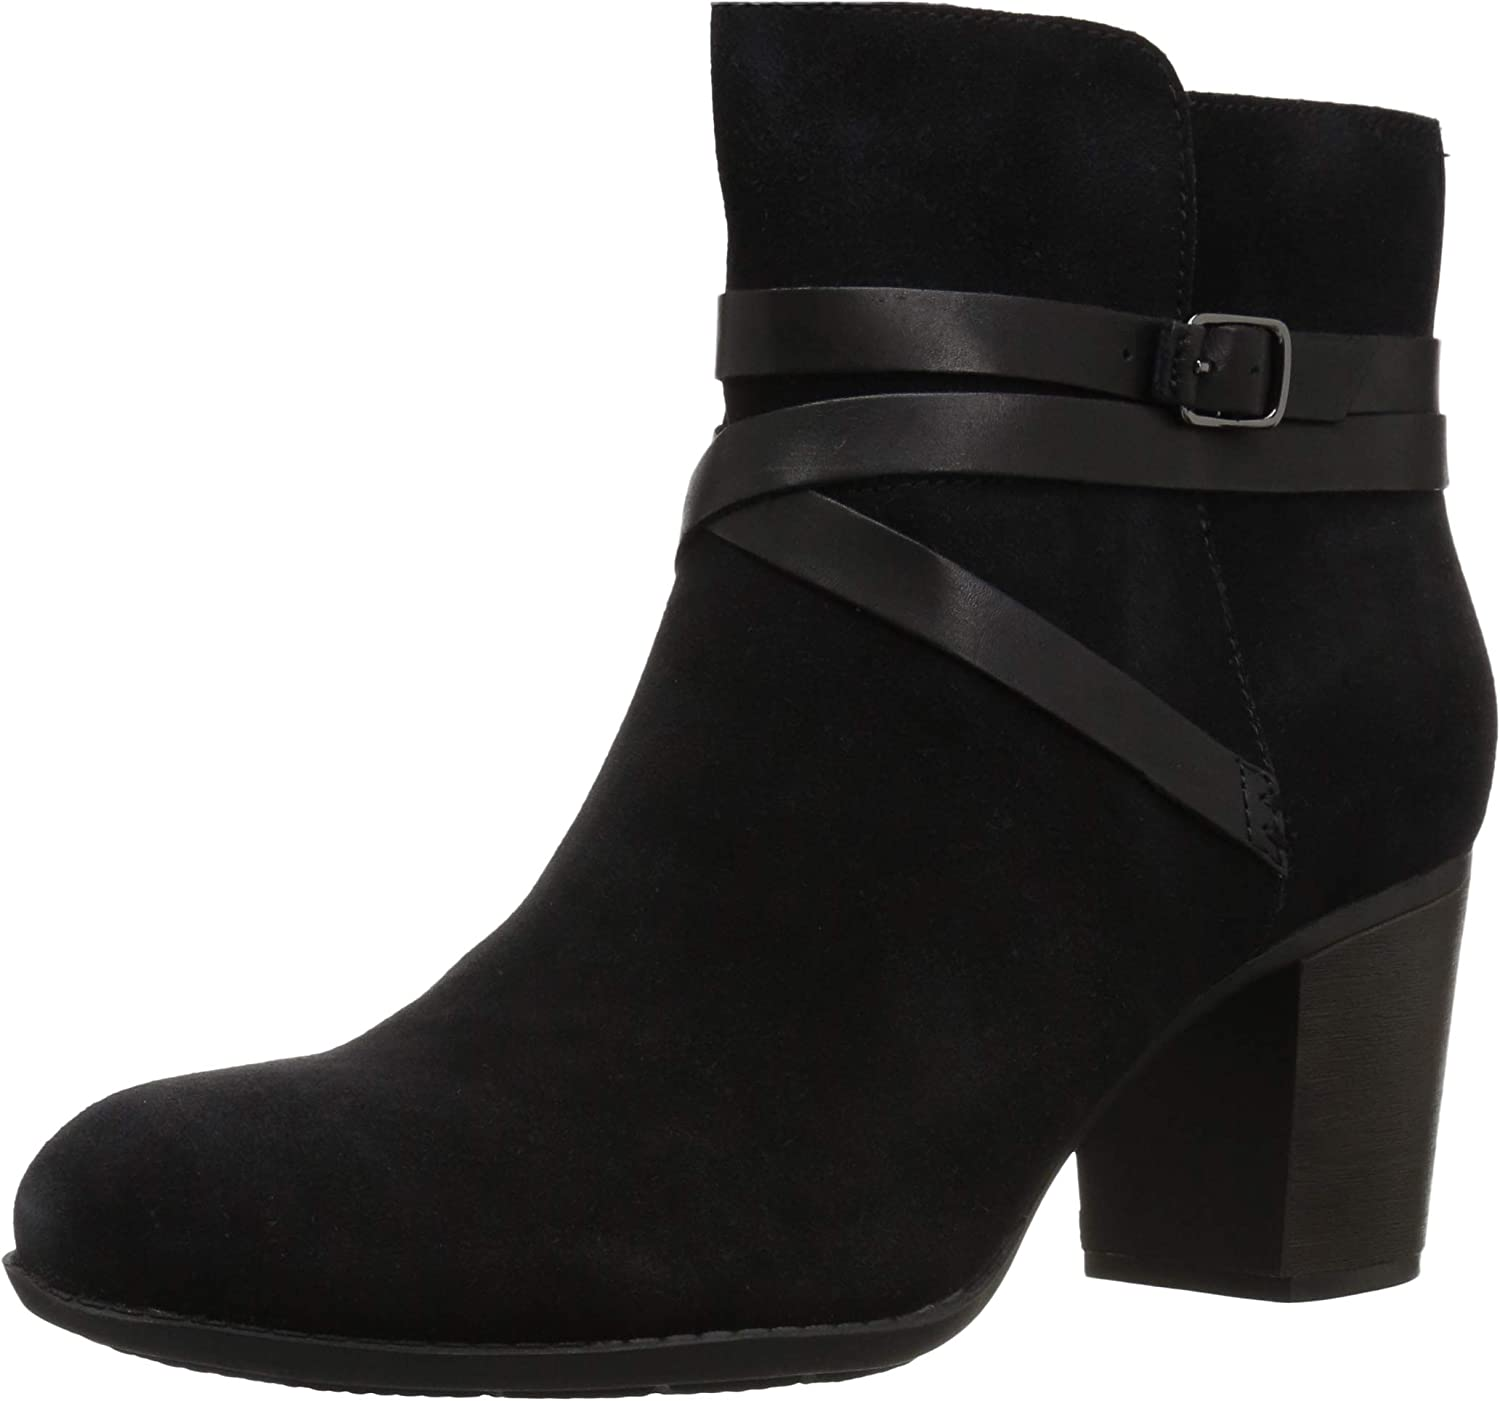 Clarks Womens Enfiled Coco Boots